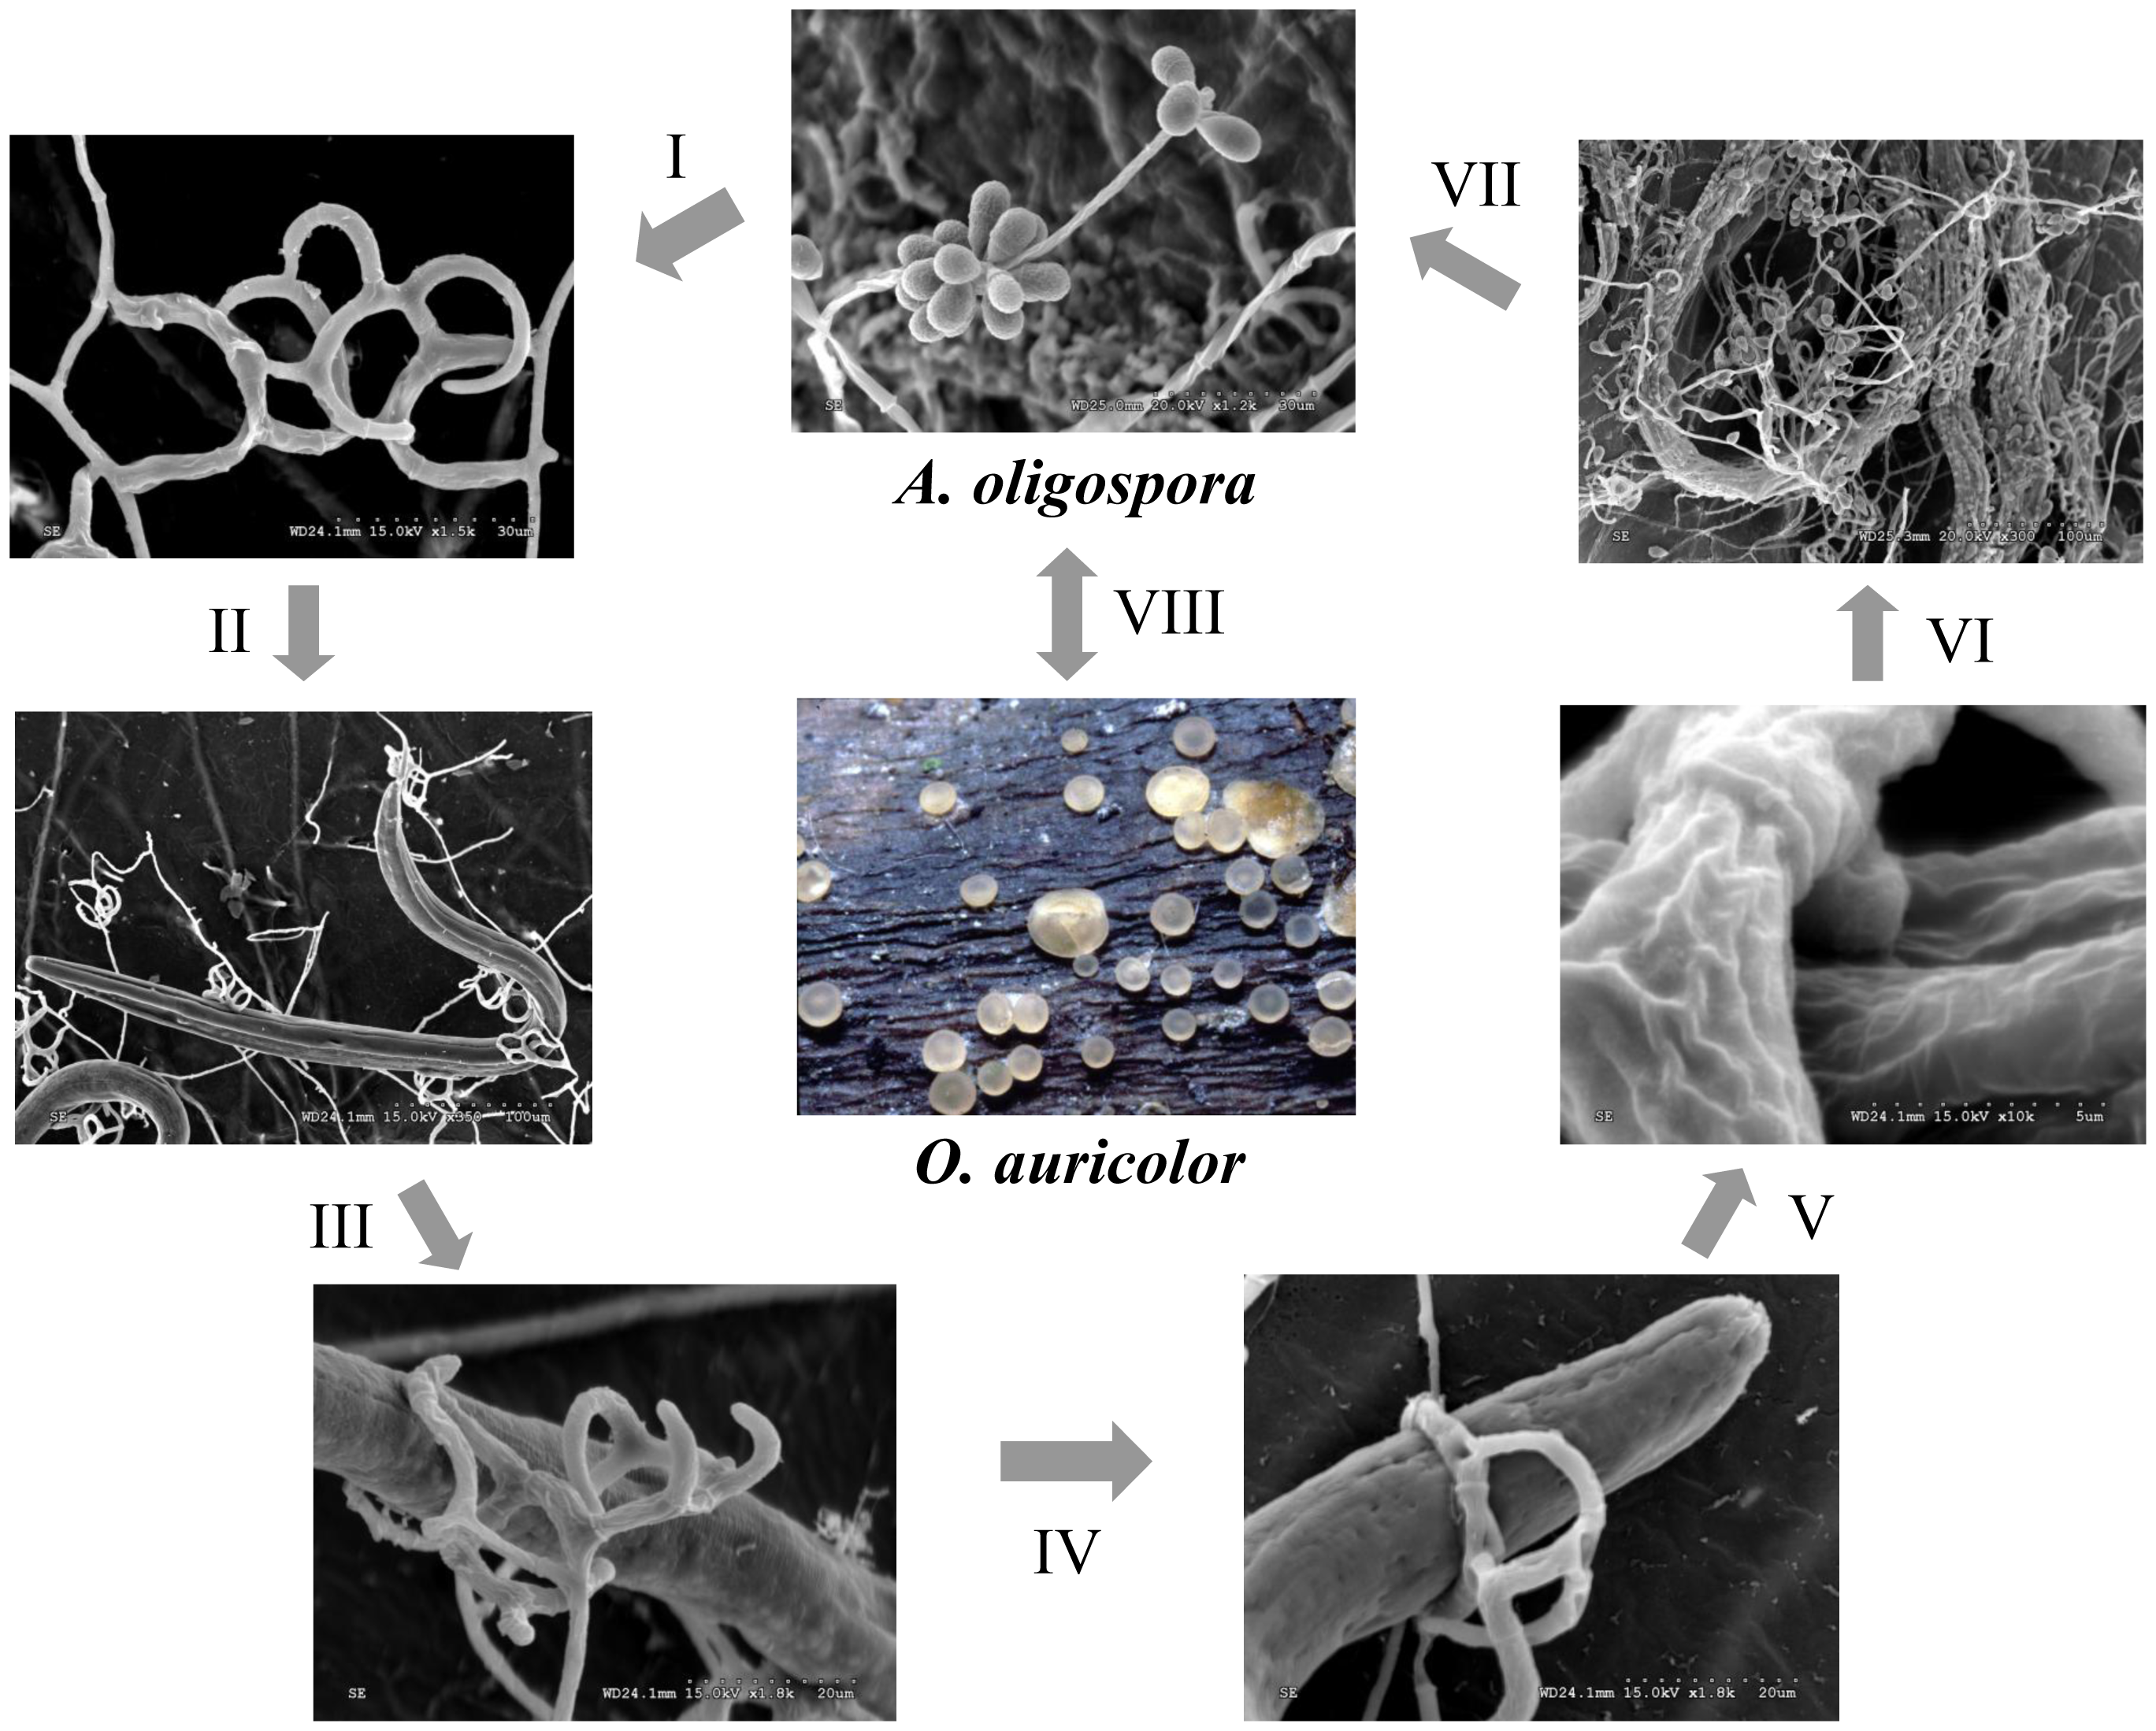 Saprophytic and parasitic stages of the nematode-trapping fungus <i>A. oligospora</i>.